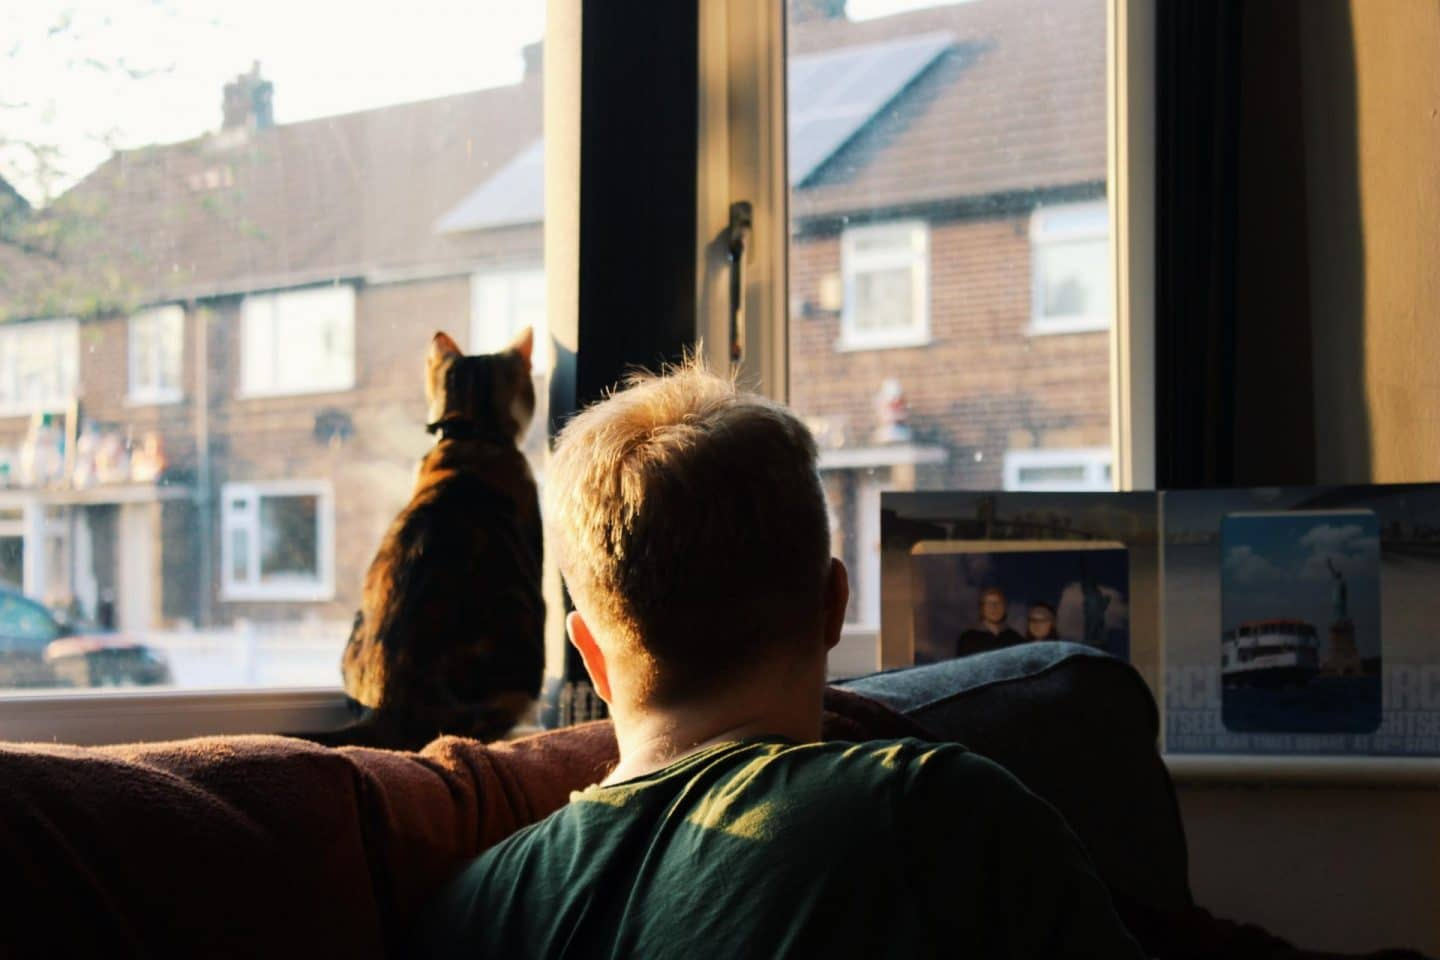 james-and-cat-window-2